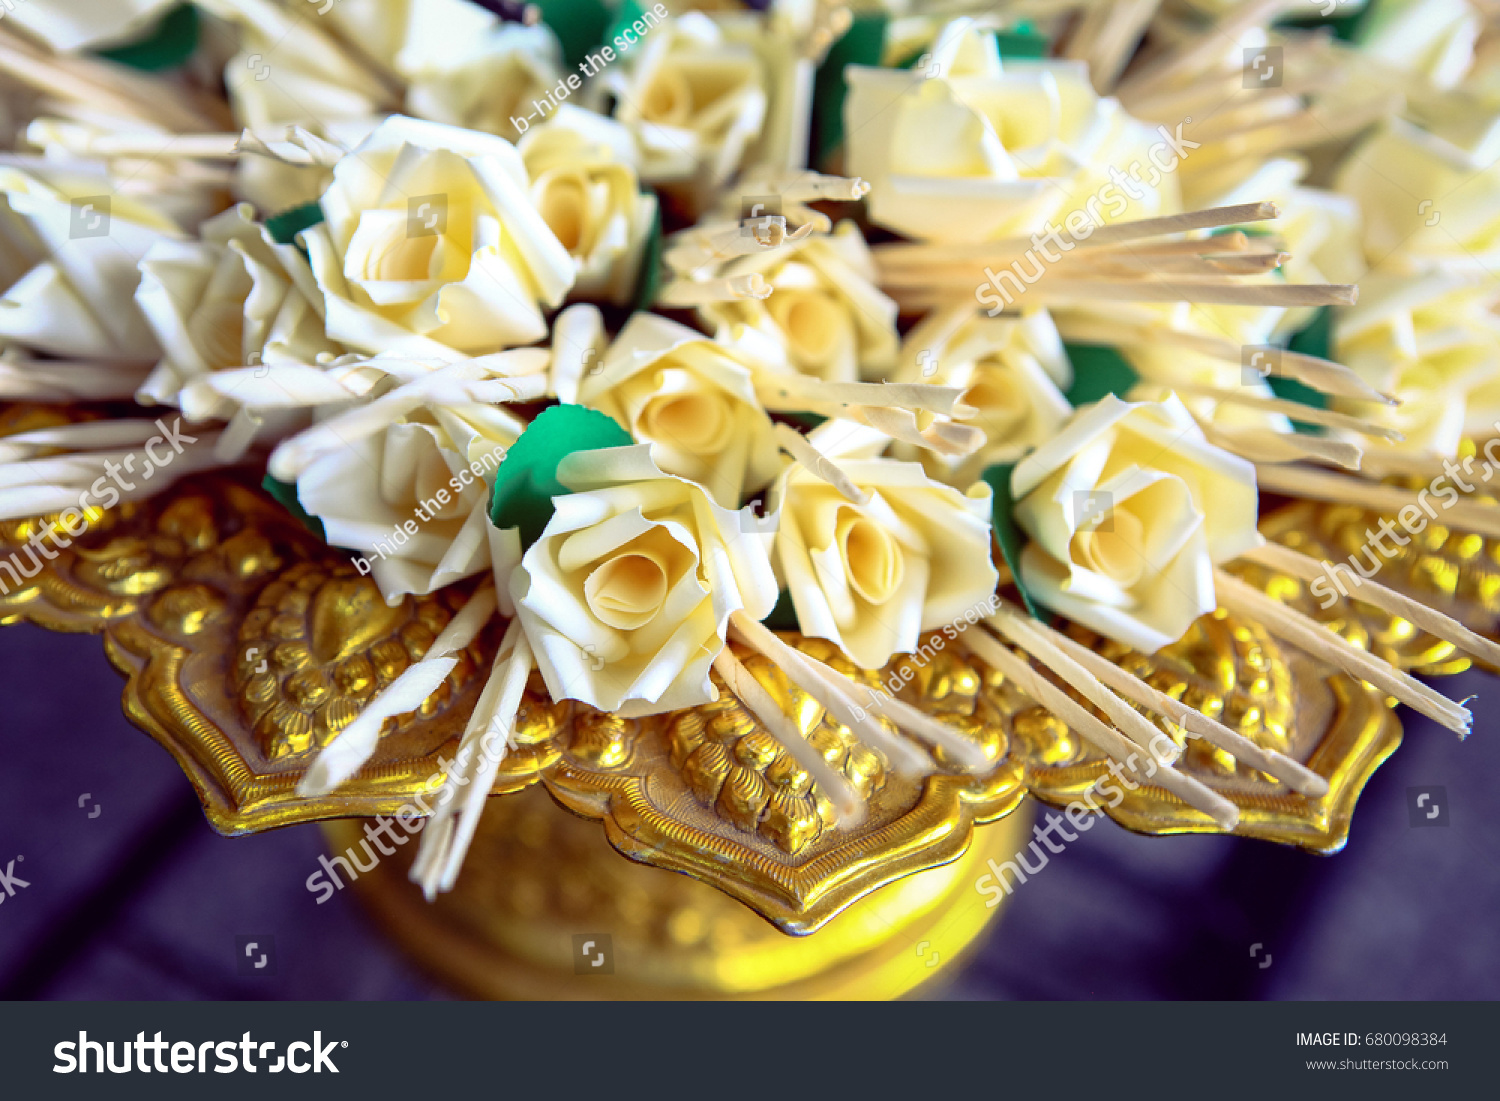 Wreath flowers funeral pyre stock photo royalty free 680098384 wreath of flowers and funeral pyre izmirmasajfo